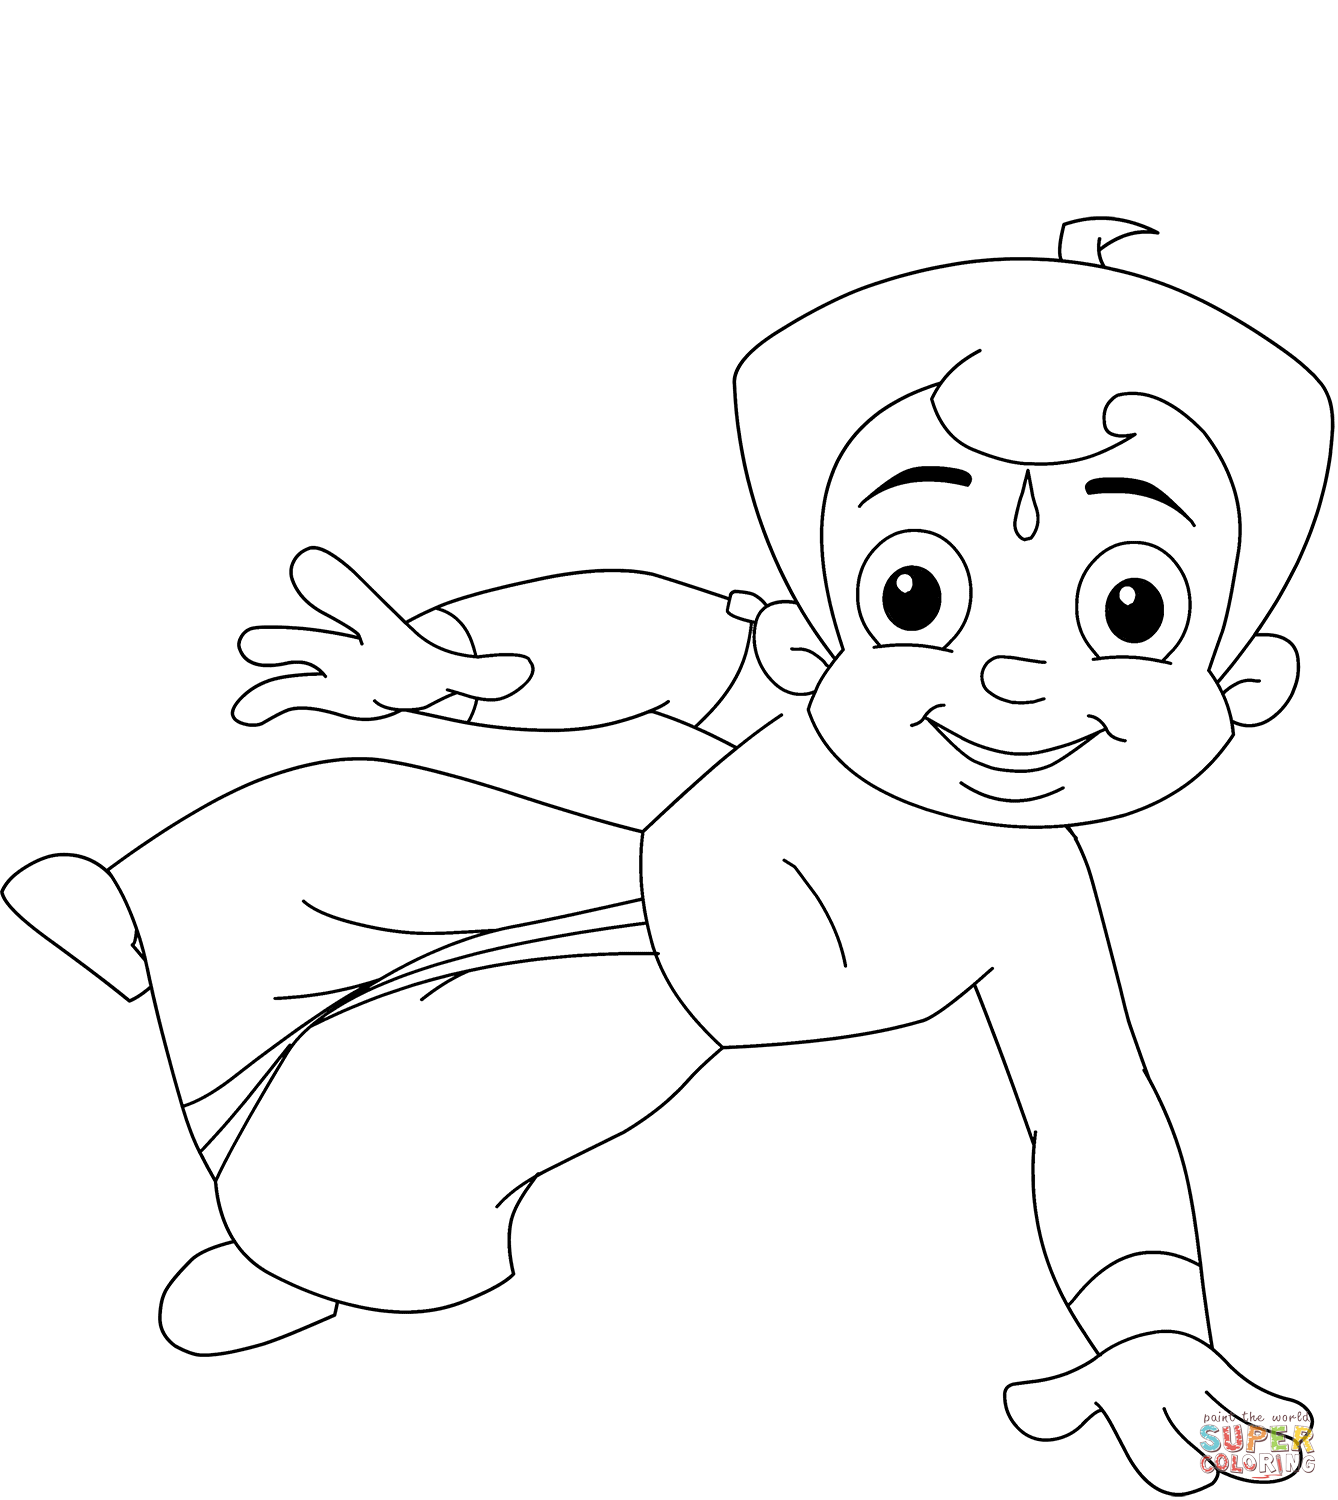 chota bheem sketch for colouring chhota bheem coloring page free printable coloring pages for colouring sketch chota bheem